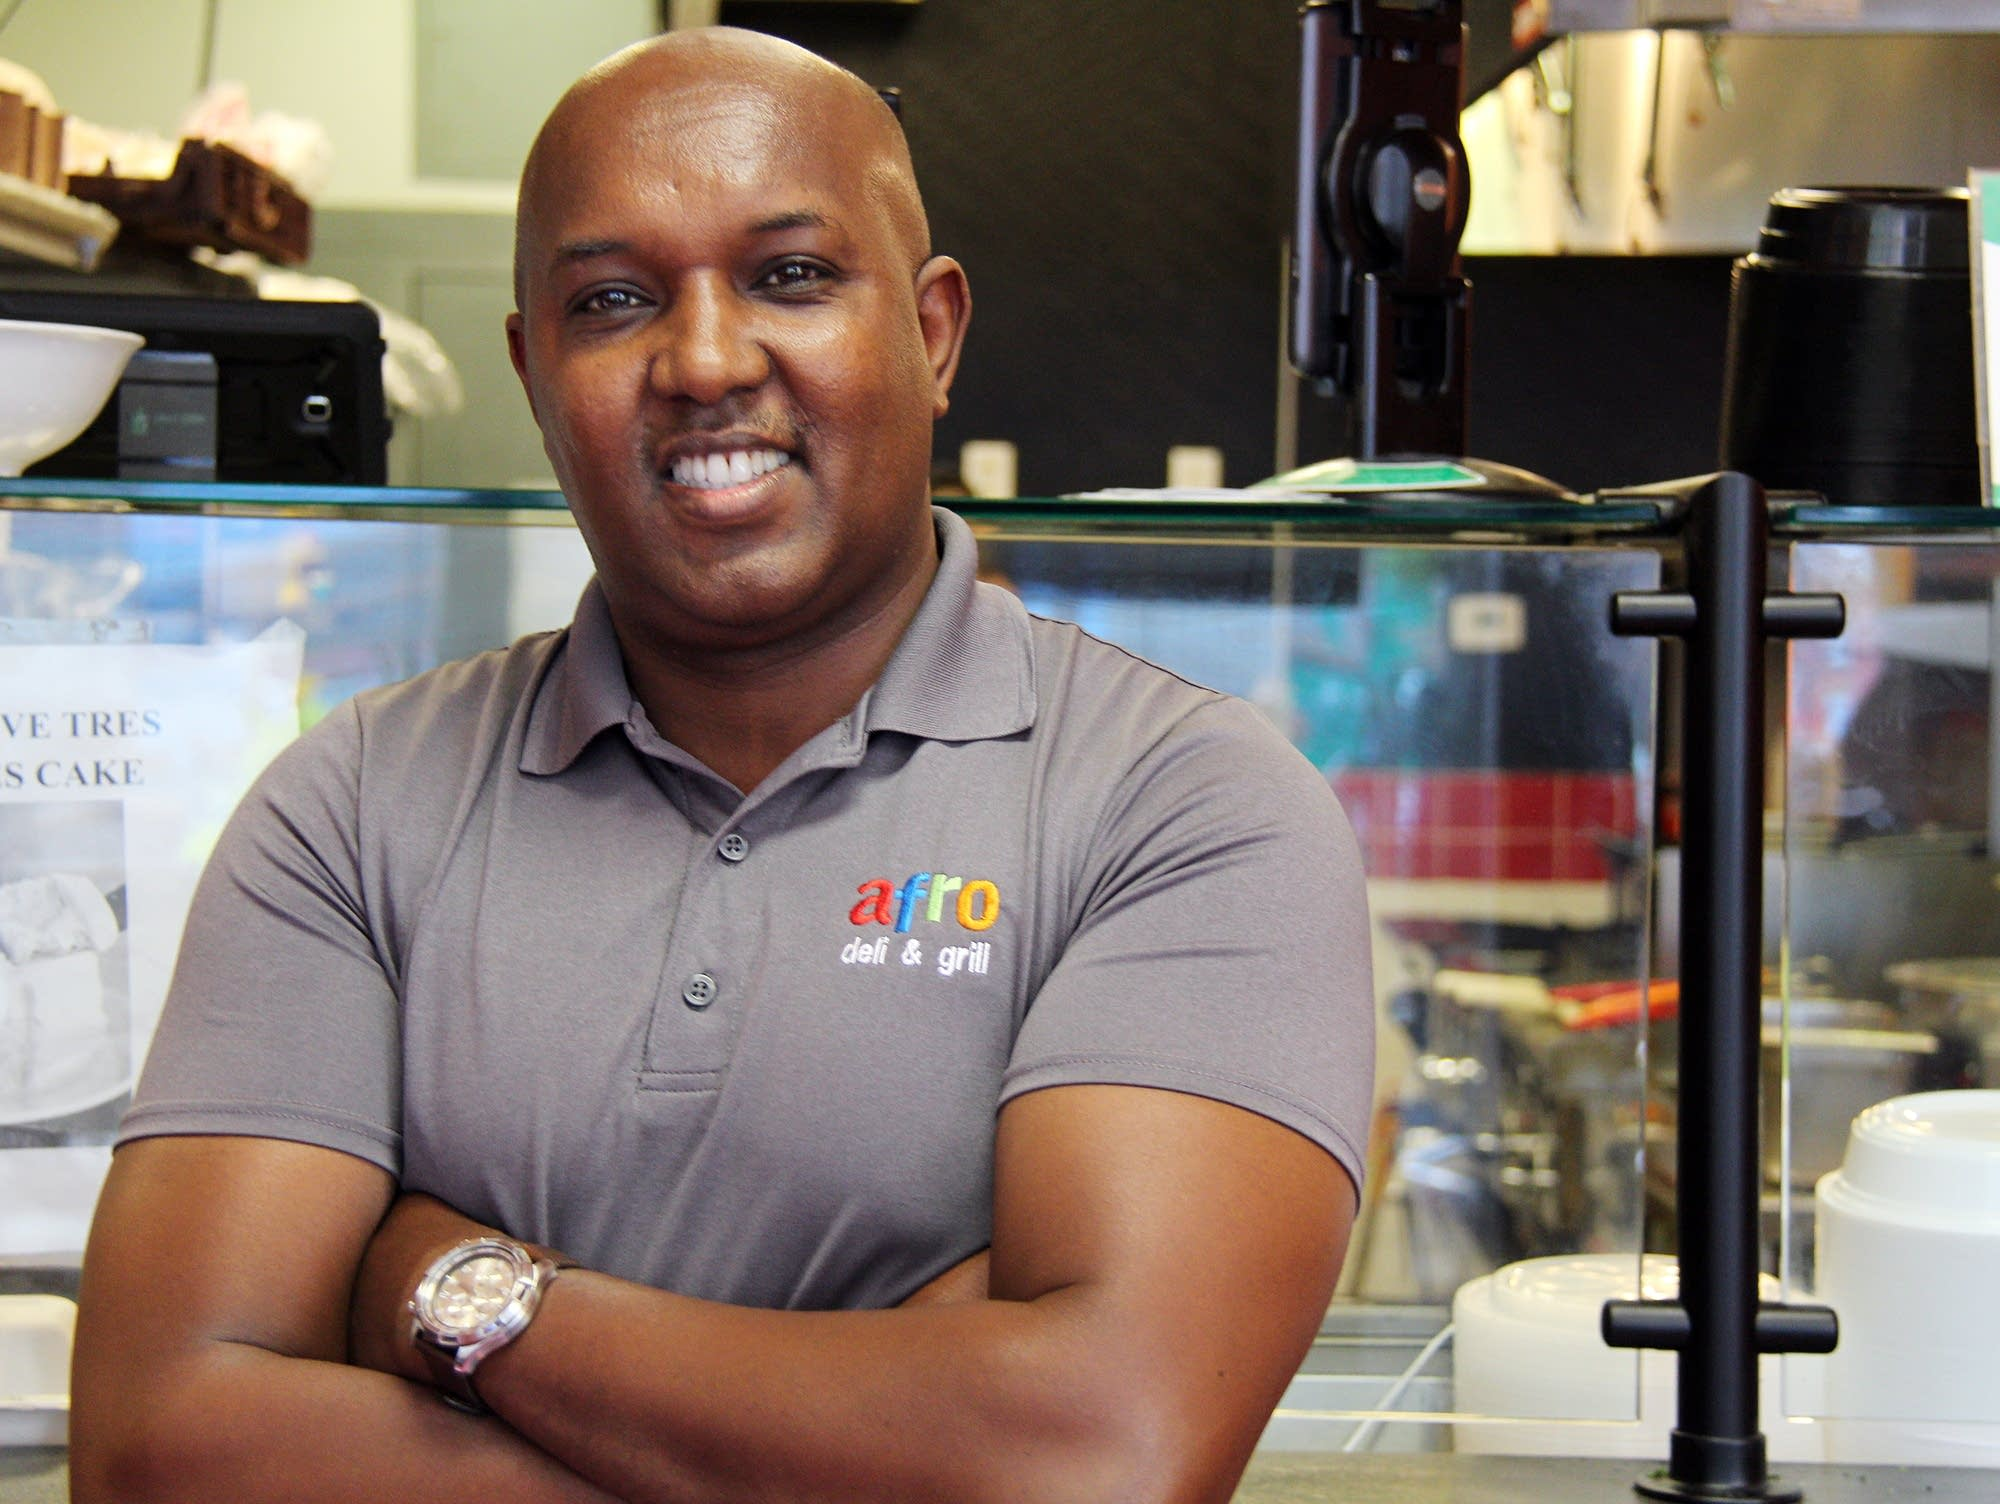 Abdirahman Kahin, owner of Afro Deli, has signed on to be an investor.